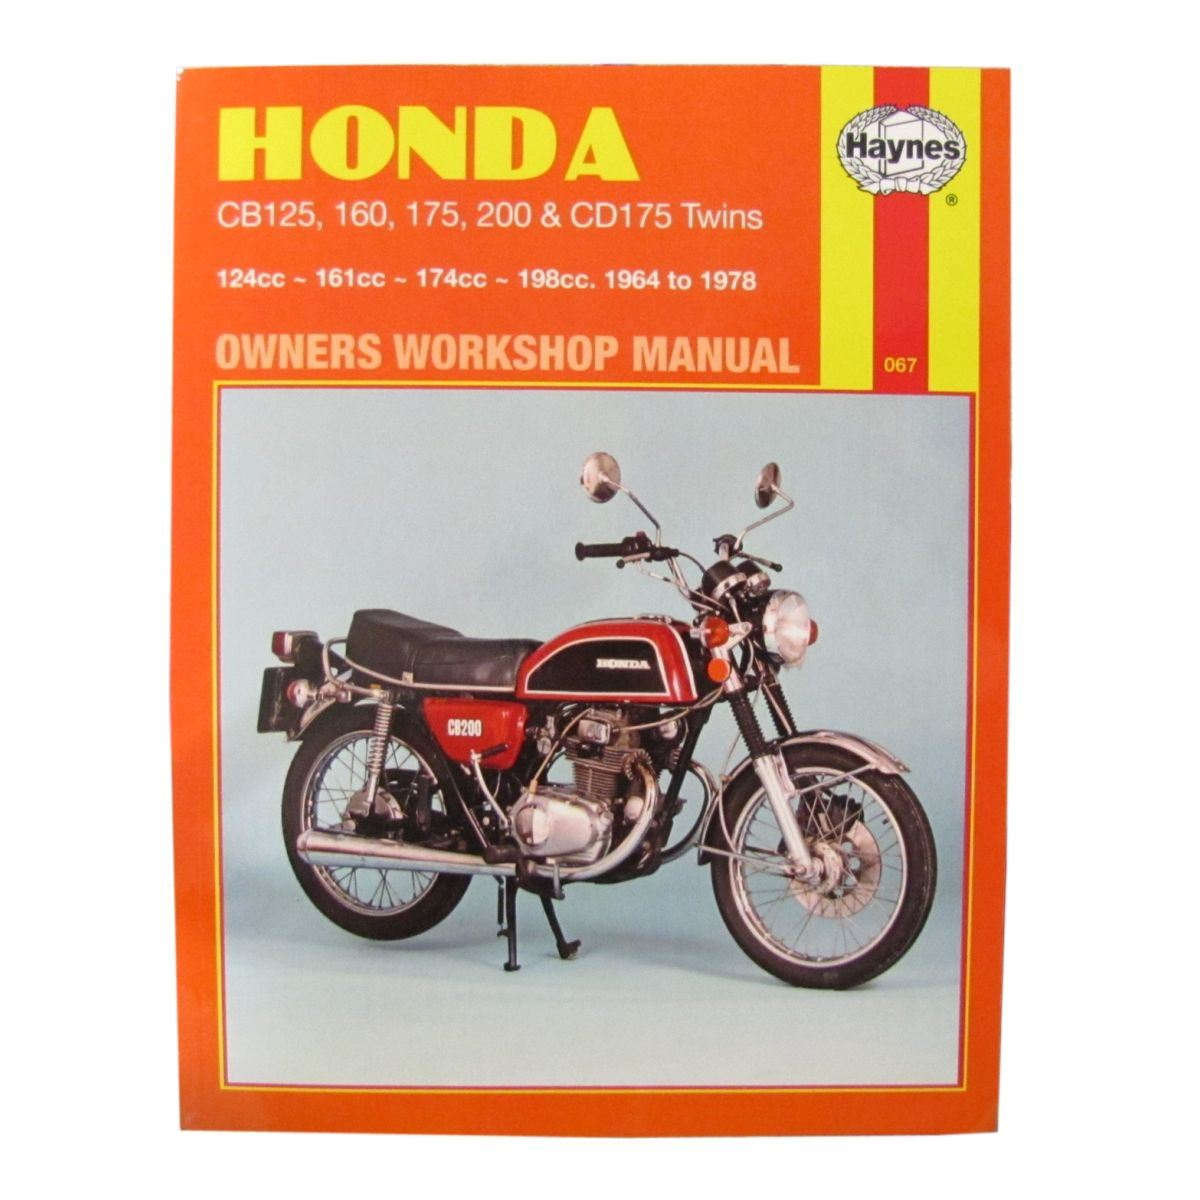 manual haynes for 1977 honda cb 200 b twin ebay. Black Bedroom Furniture Sets. Home Design Ideas